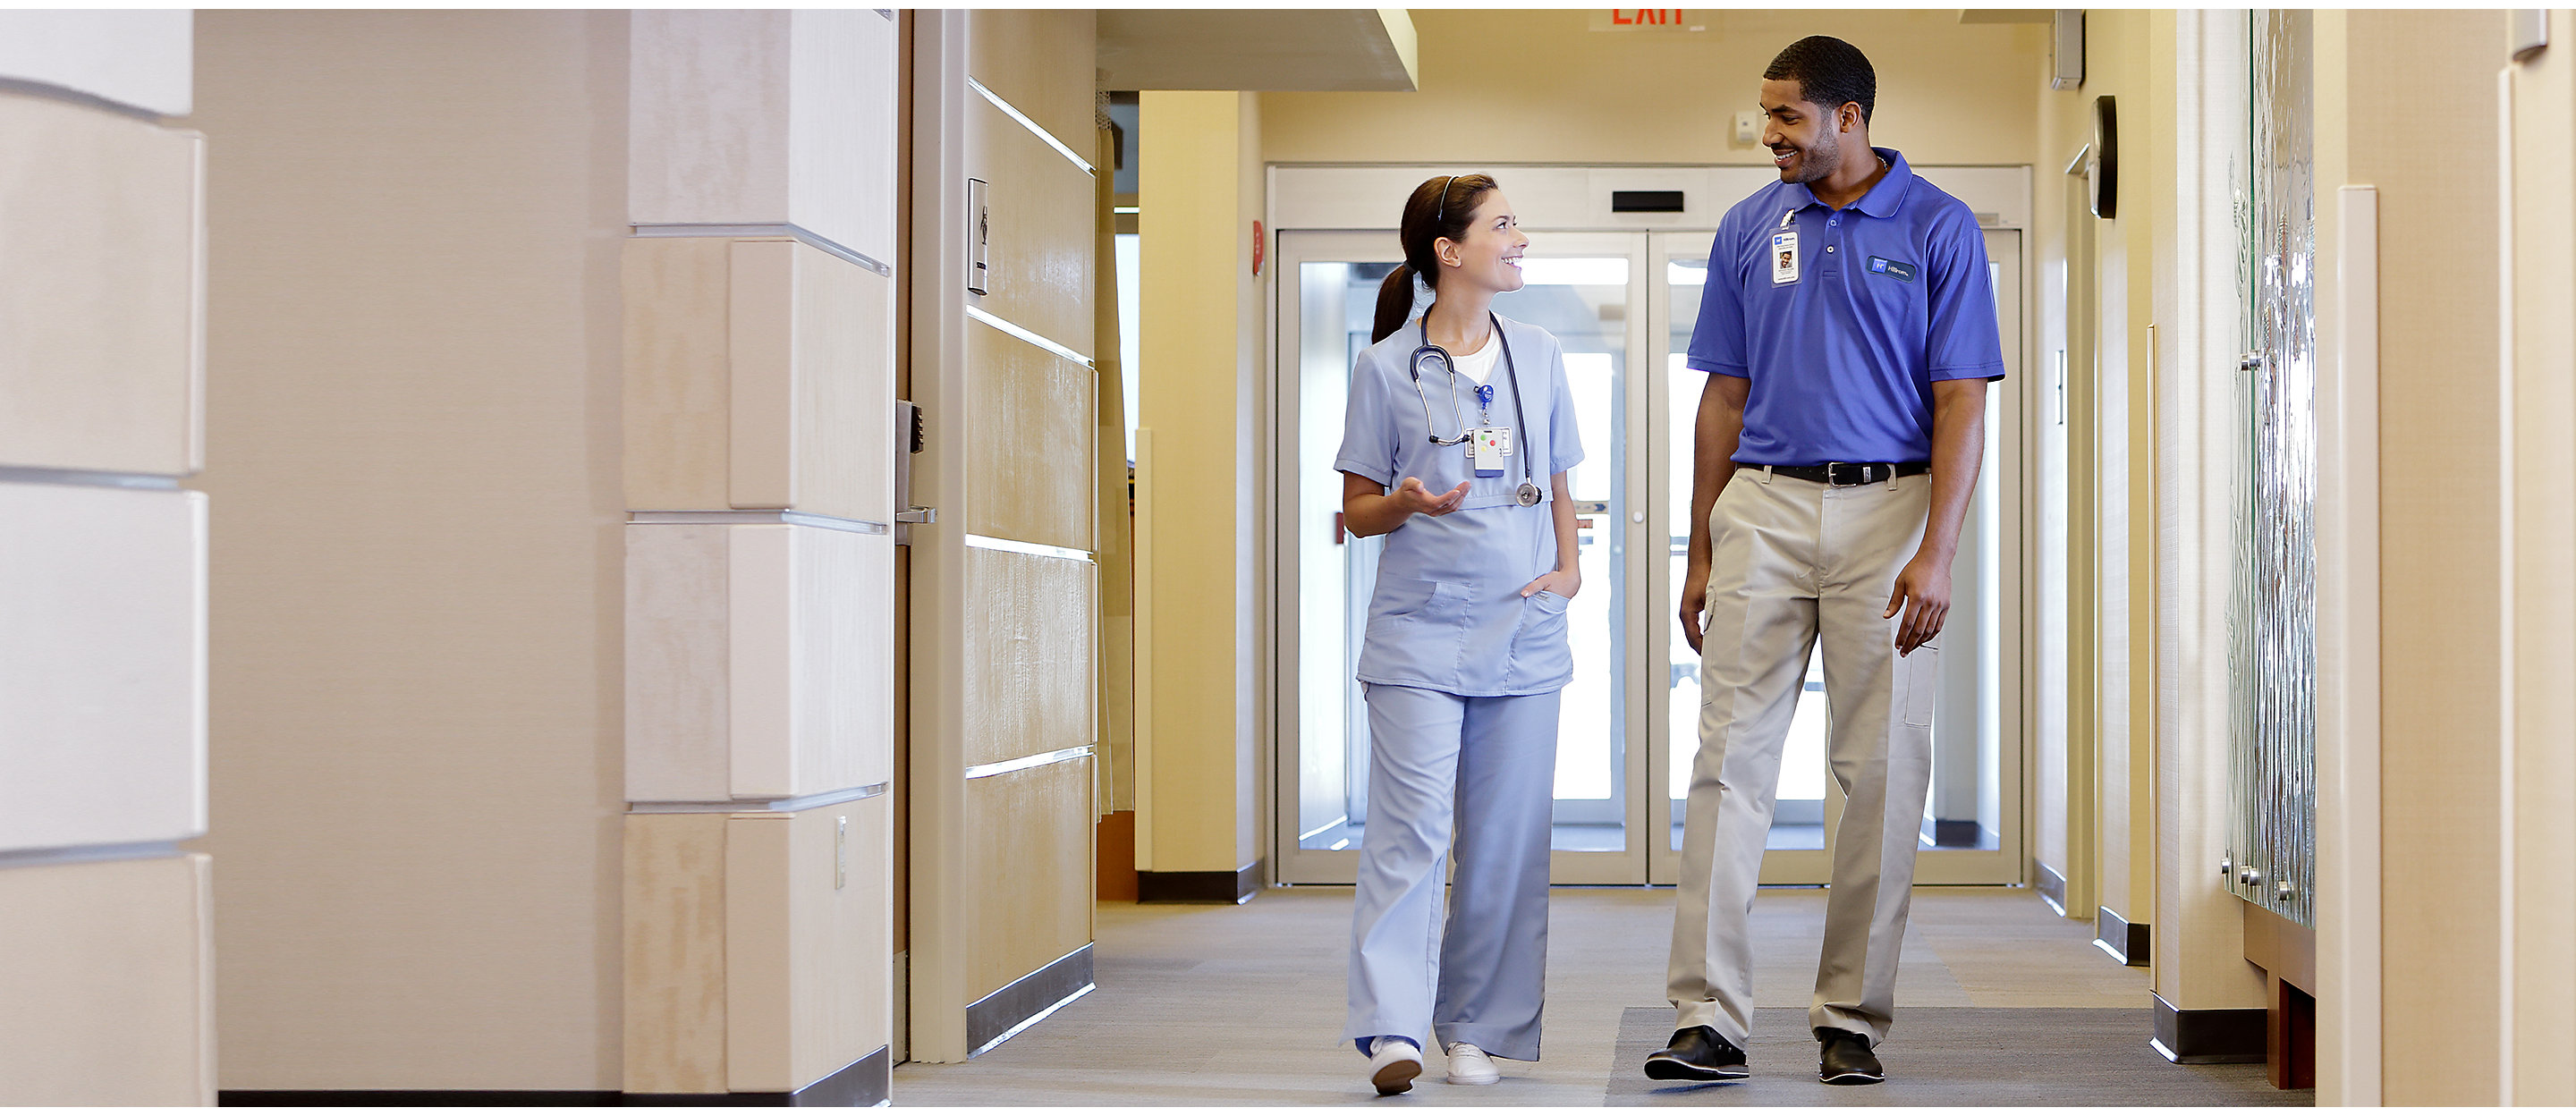 A Hillrom instructor walks down a hospital hallway, talking with a clinician